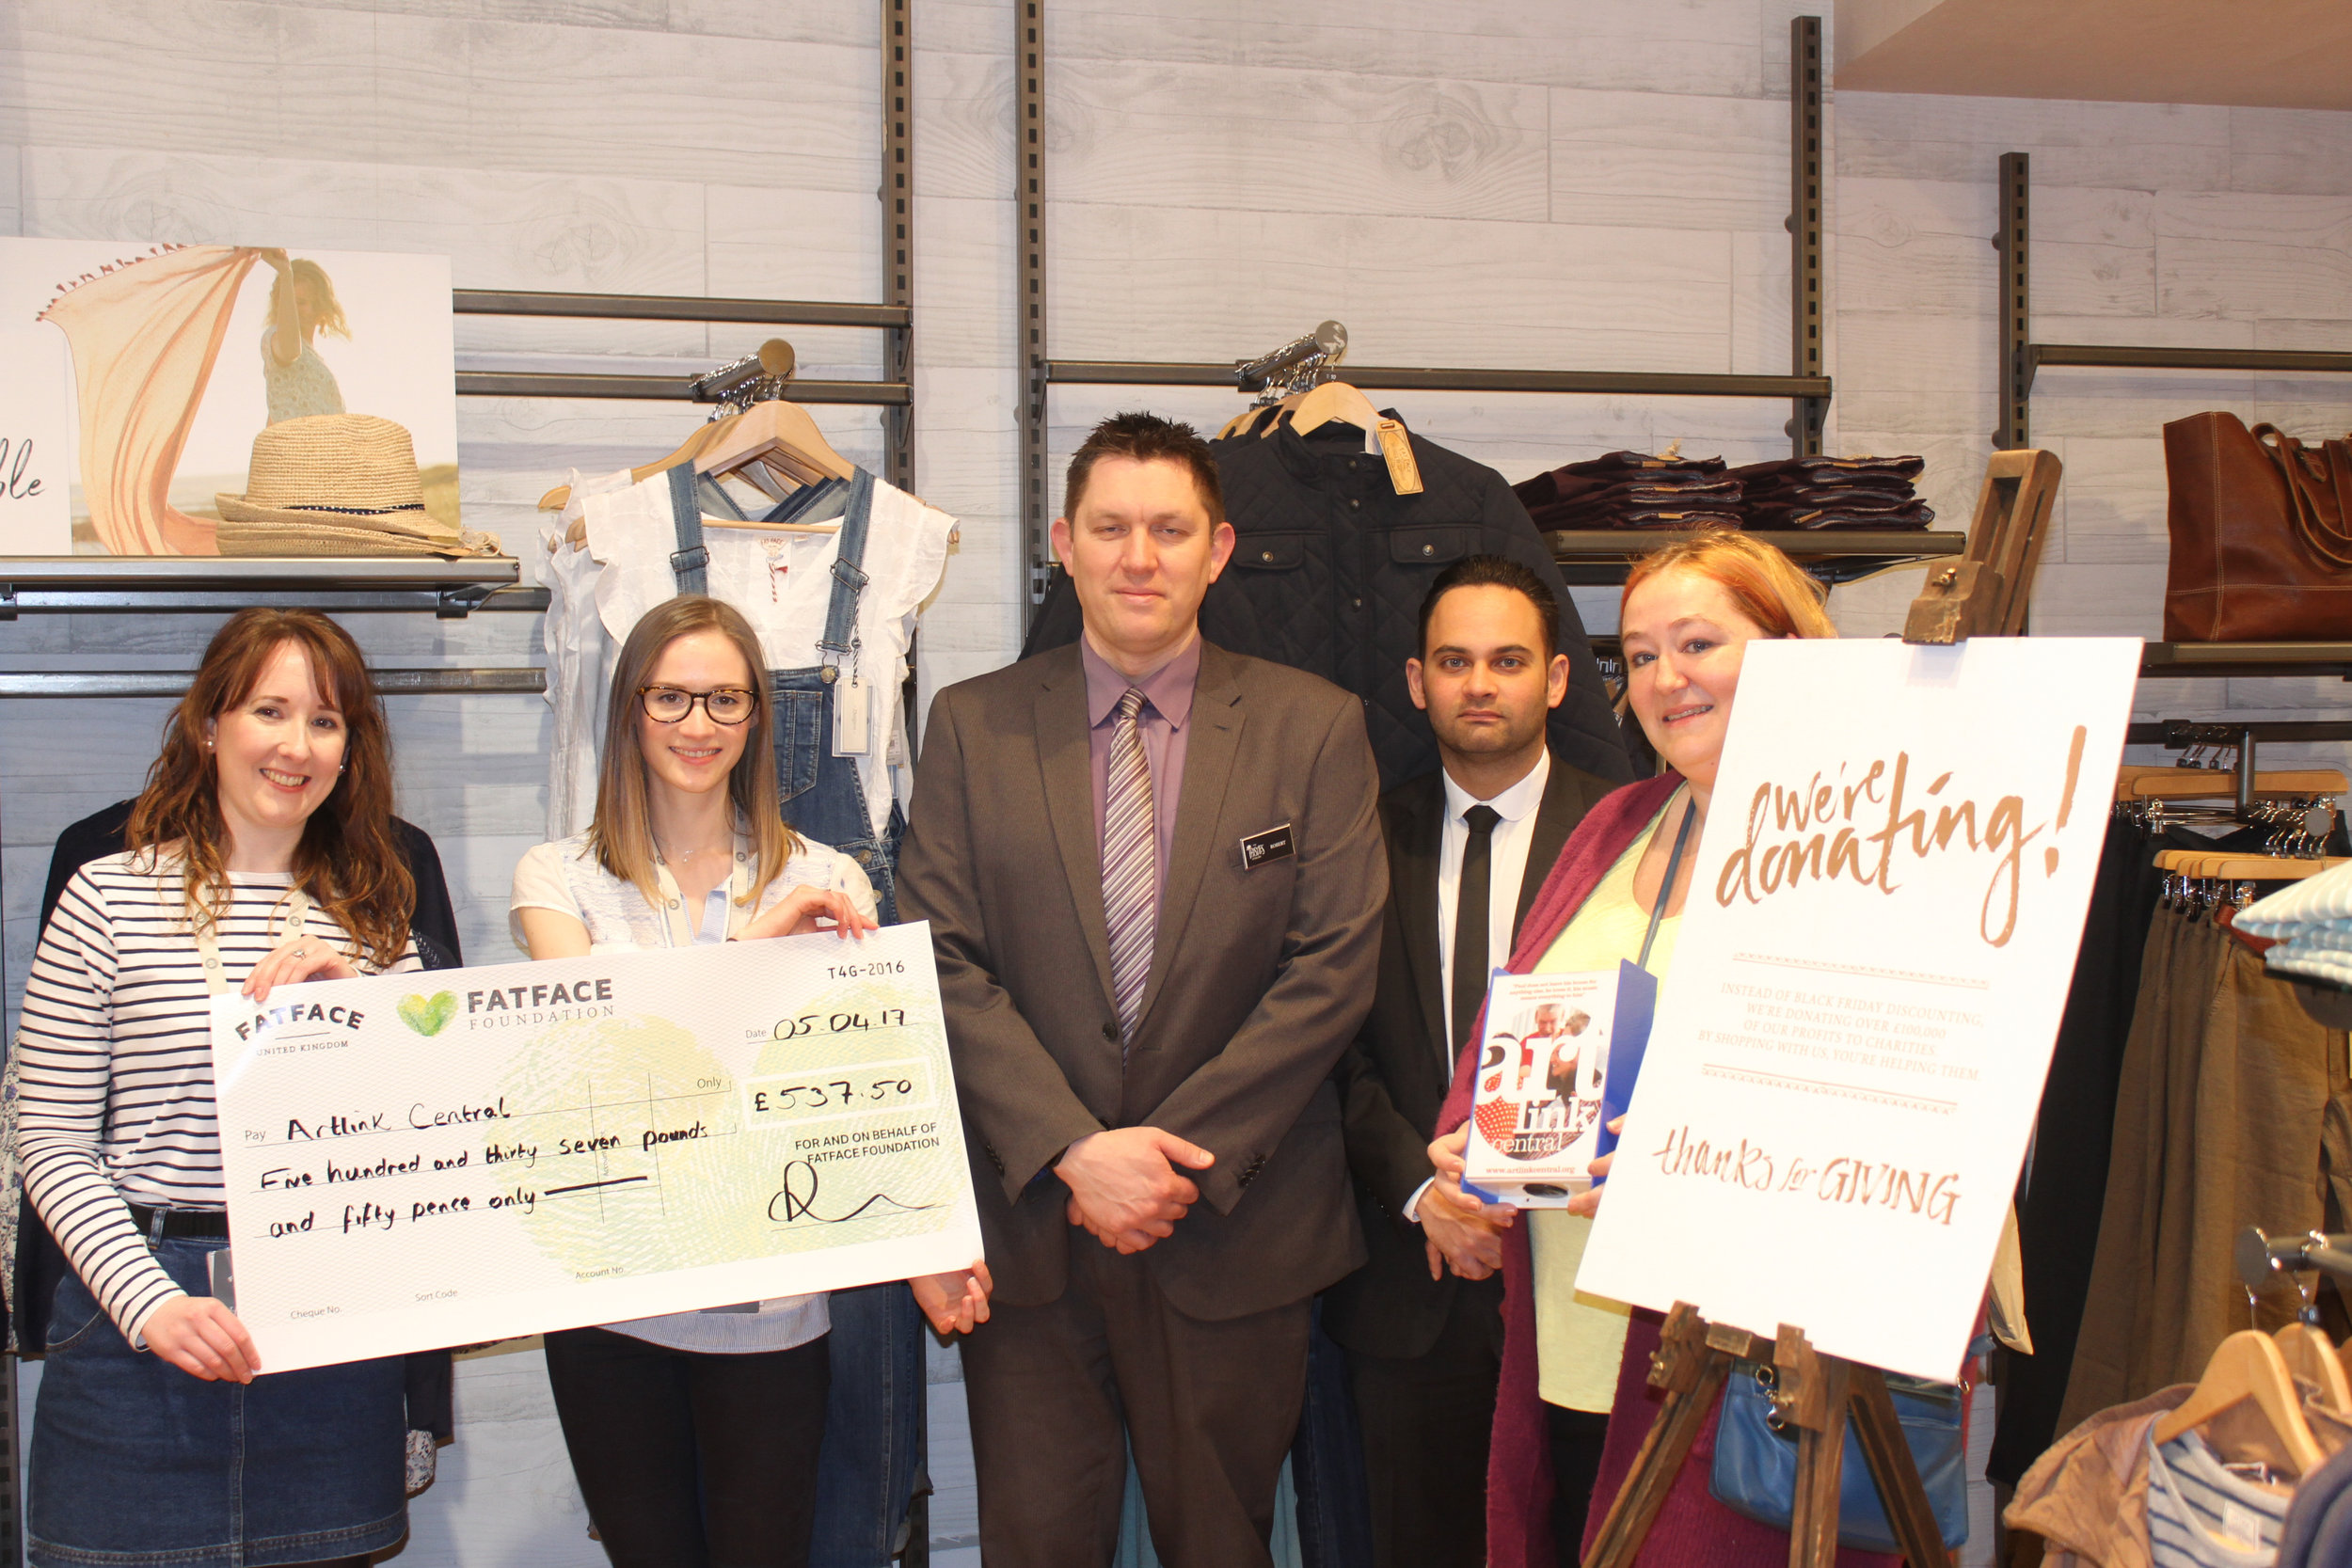 Artlink Central has benefitted from support from Fatface Stirling and the Thistles Stirling team offering support to the arts charity in recent months.